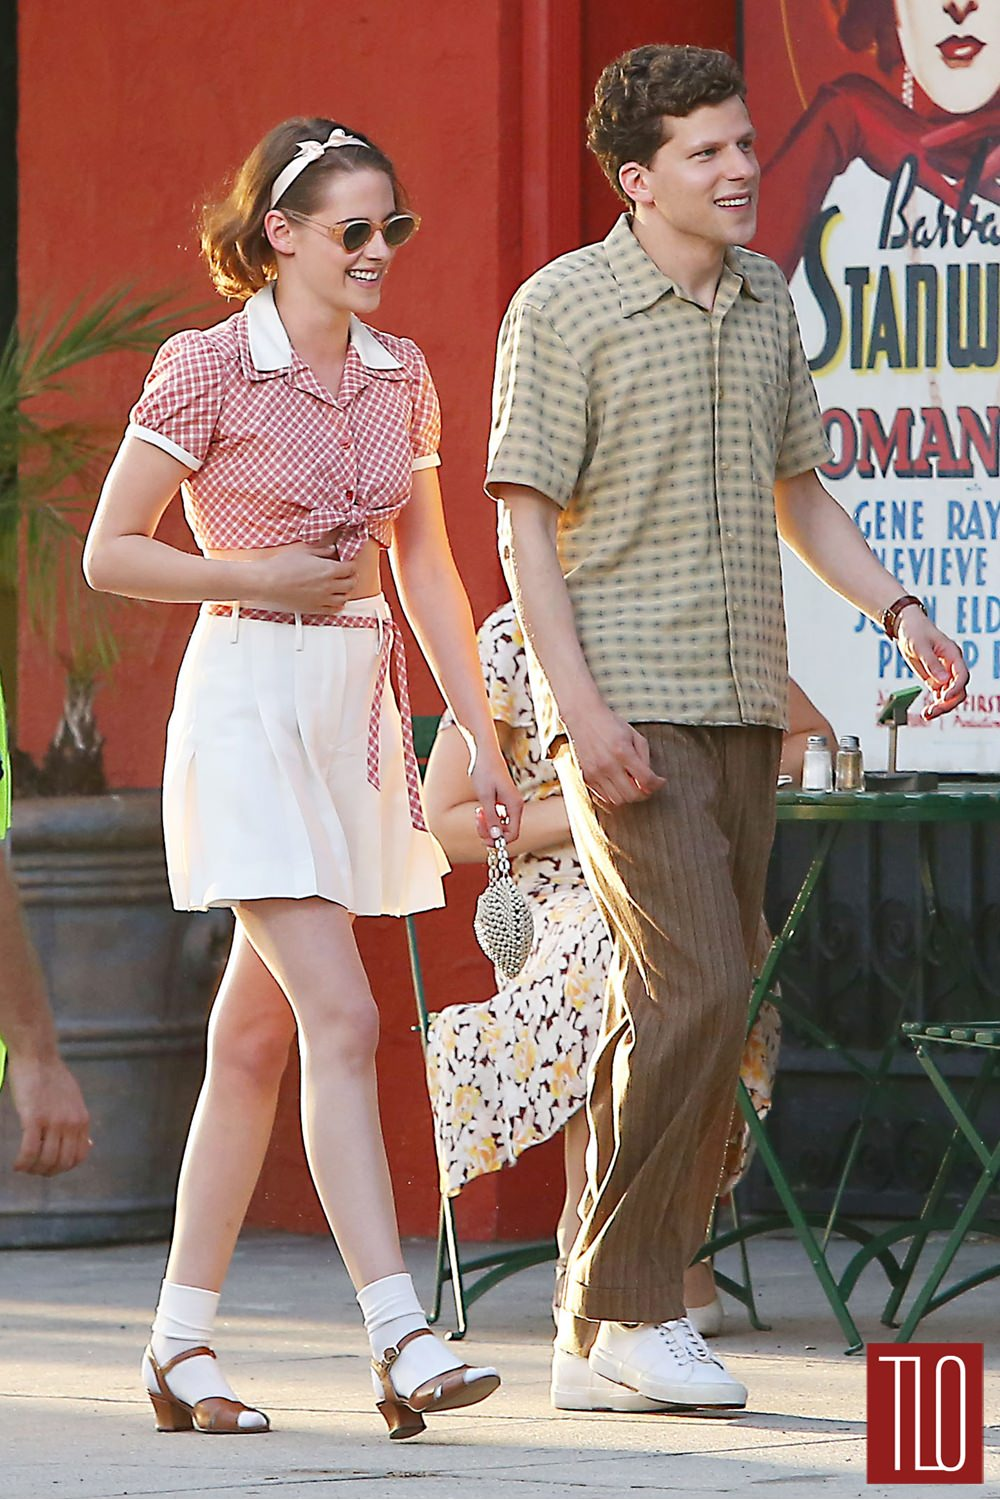 Kristen-Stewart-Jesse-Eisenberg-On-Movie-Set-Woody-Allen-Movie-Tom-Lorenzo-Site-TLO-1